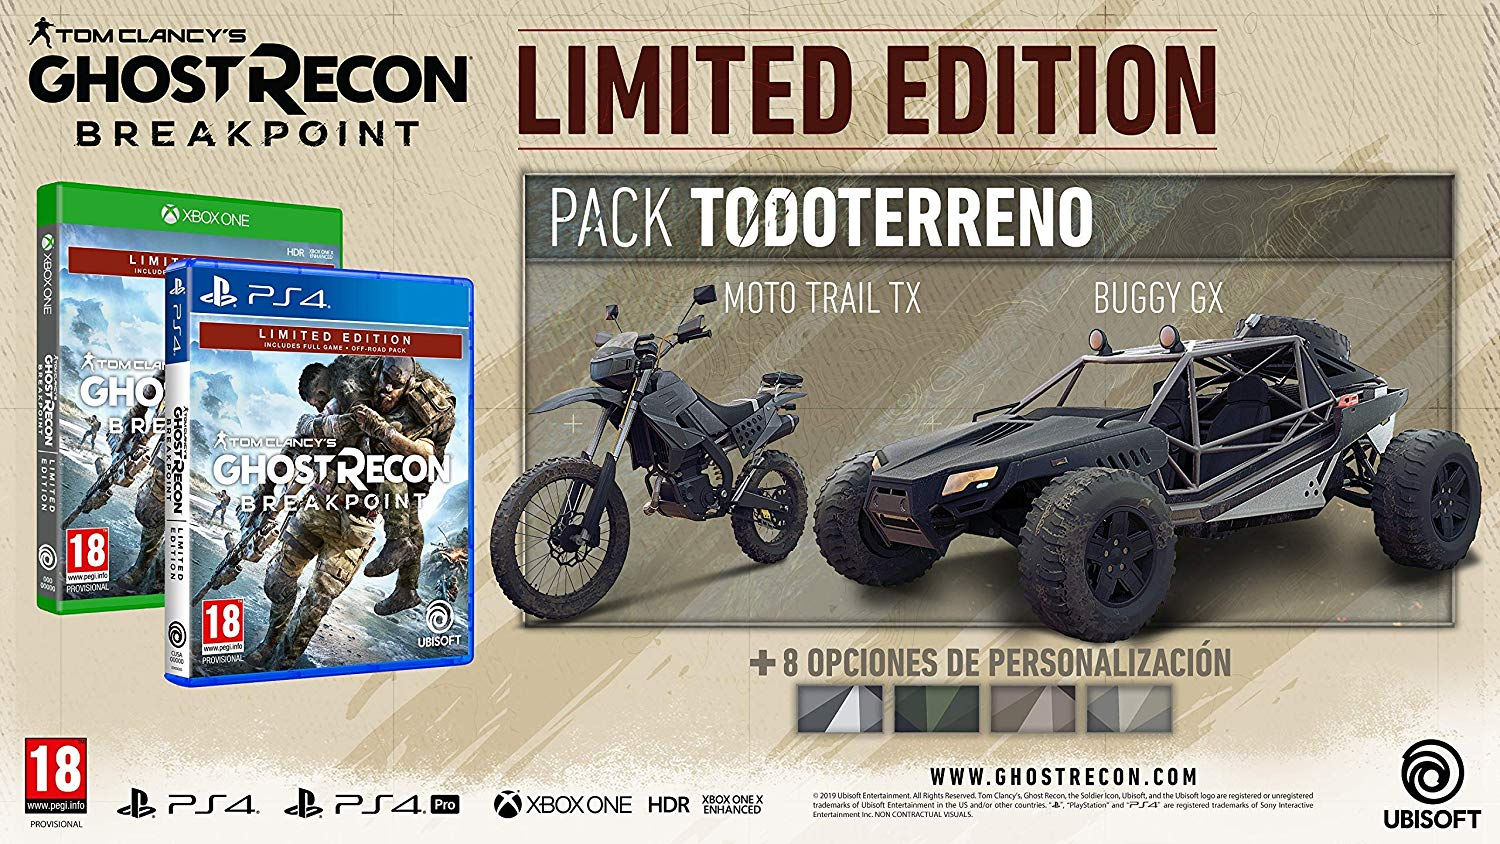 Tom Clancy's Ghost Recon Breakpoint Limited Edition